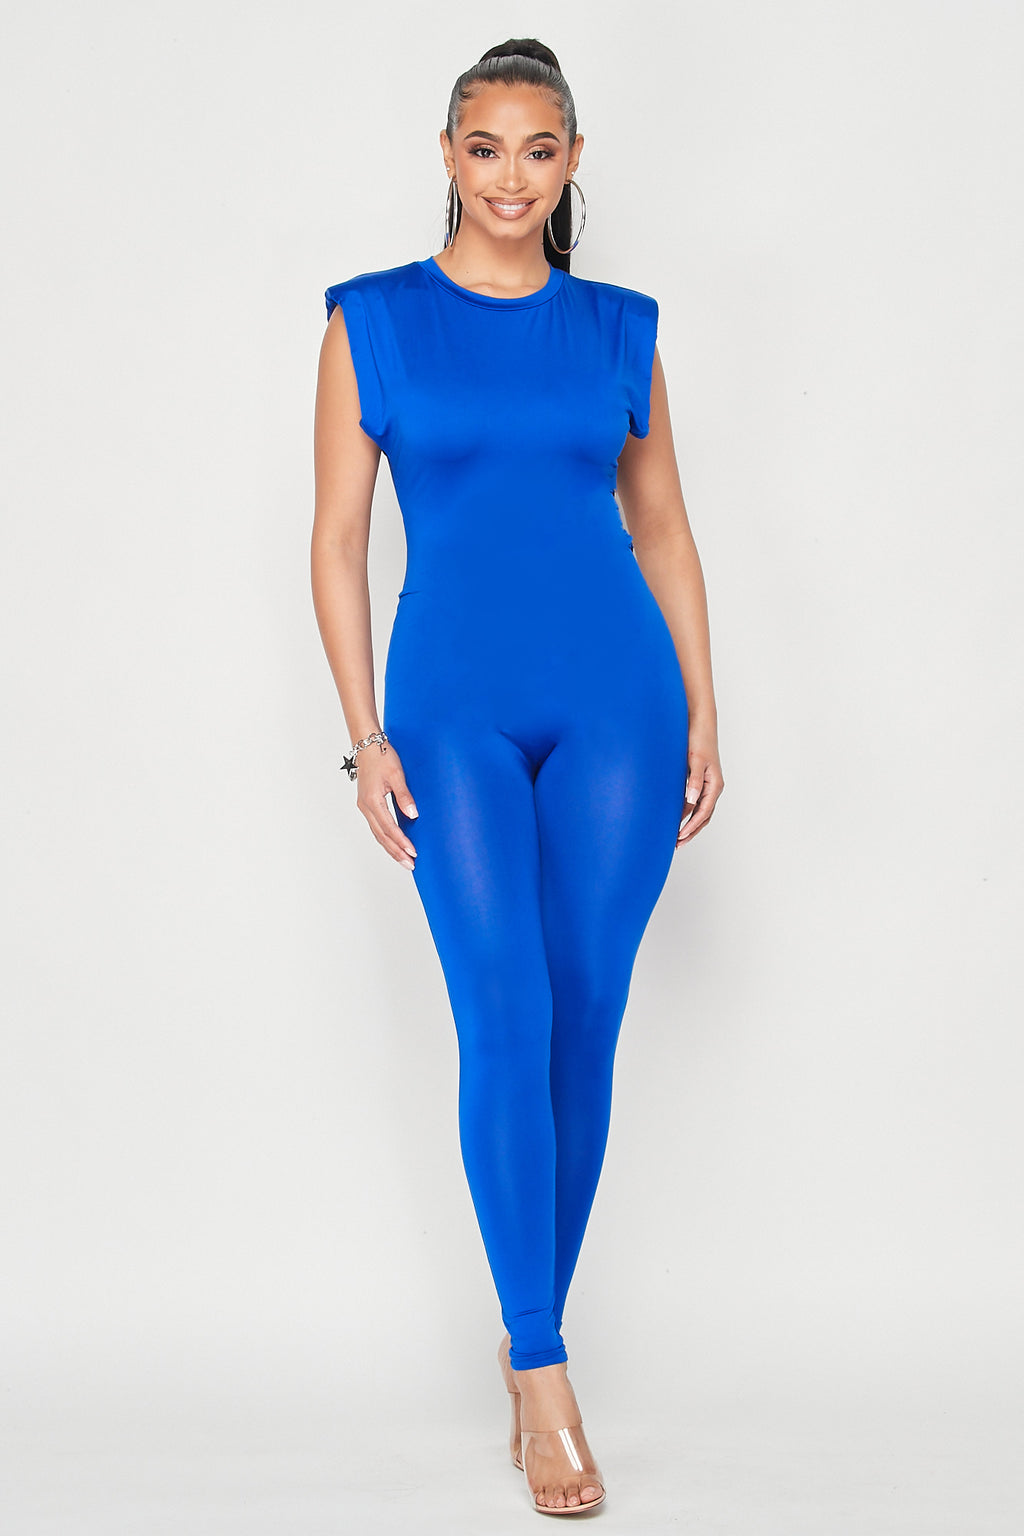 Power Shoulder Sleeveless Jumpsuit in Royal